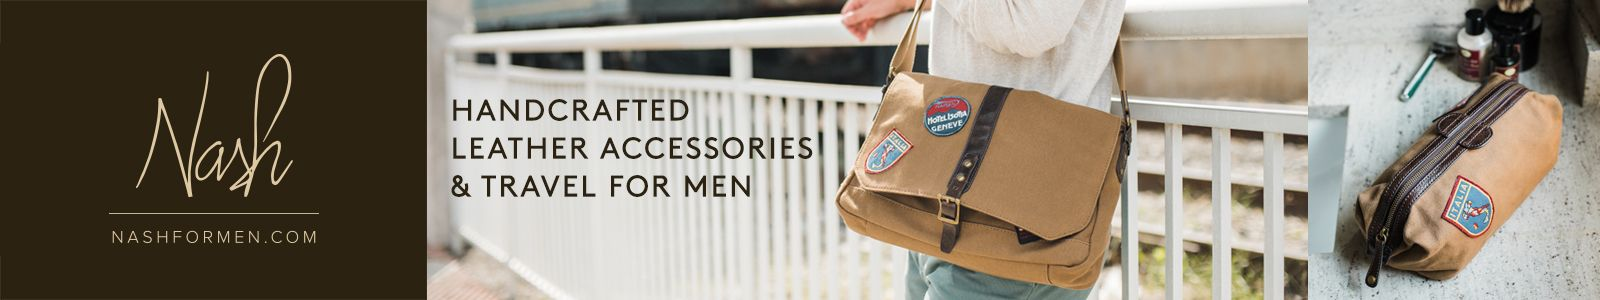 Nash, Handcrafted Leather Accessories and Travel for Men